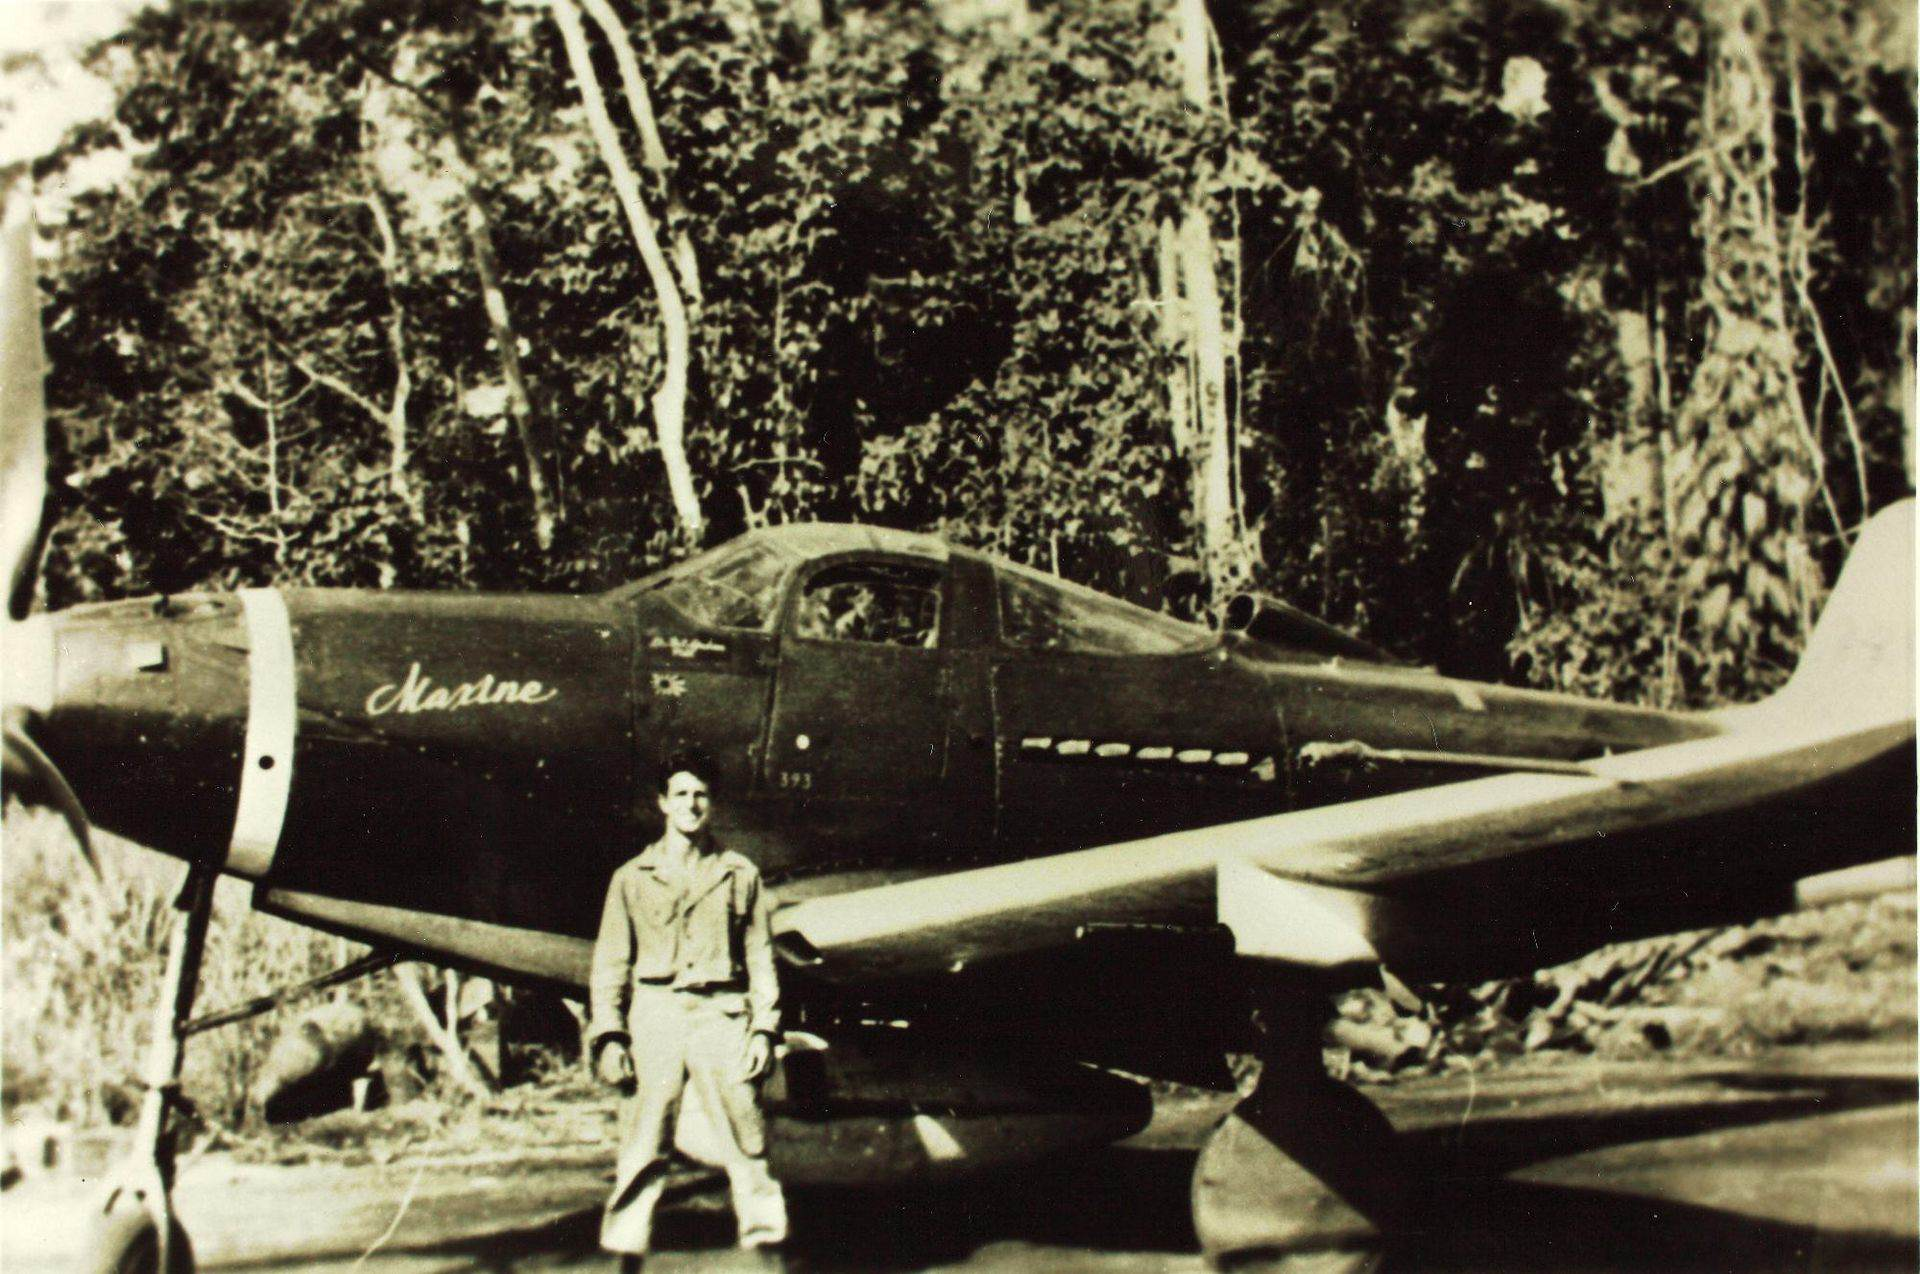 72nd Tactical Recon Group P 39 - Un appareil du 72nd Tactical Recon Group P-39. Photo prise en 1942